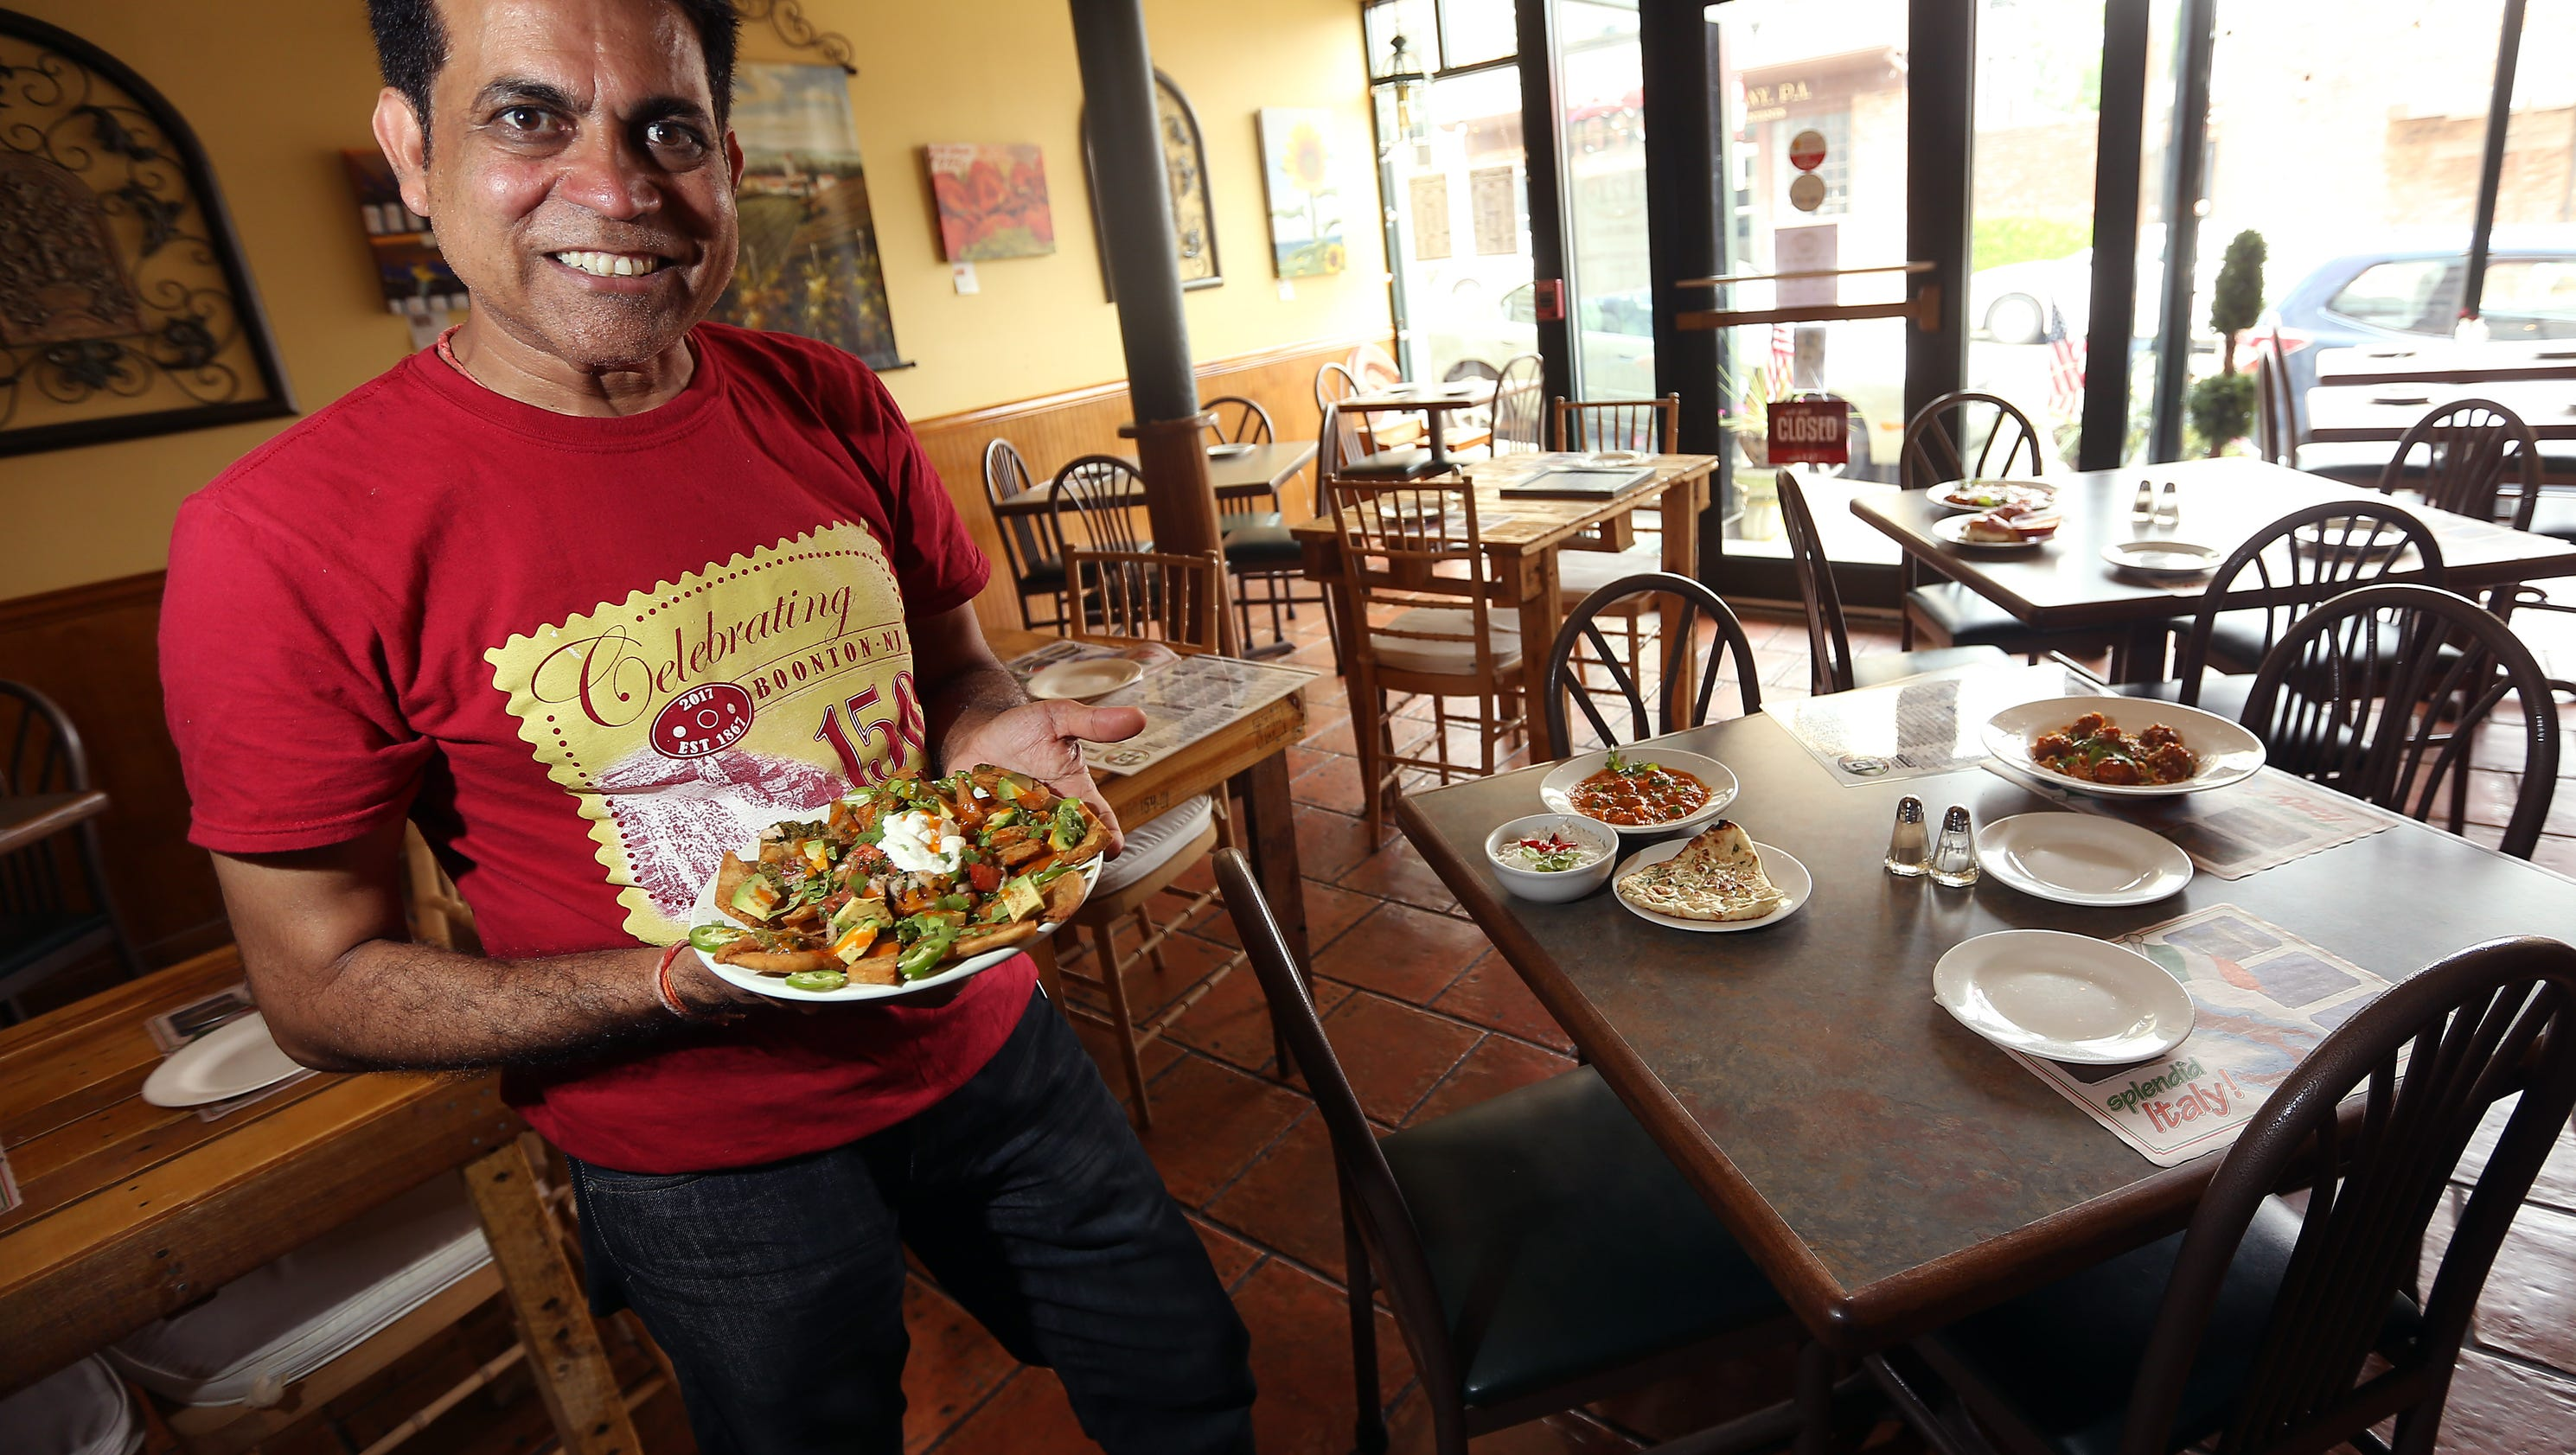 boonton restaurant blends italian and indian cuisine